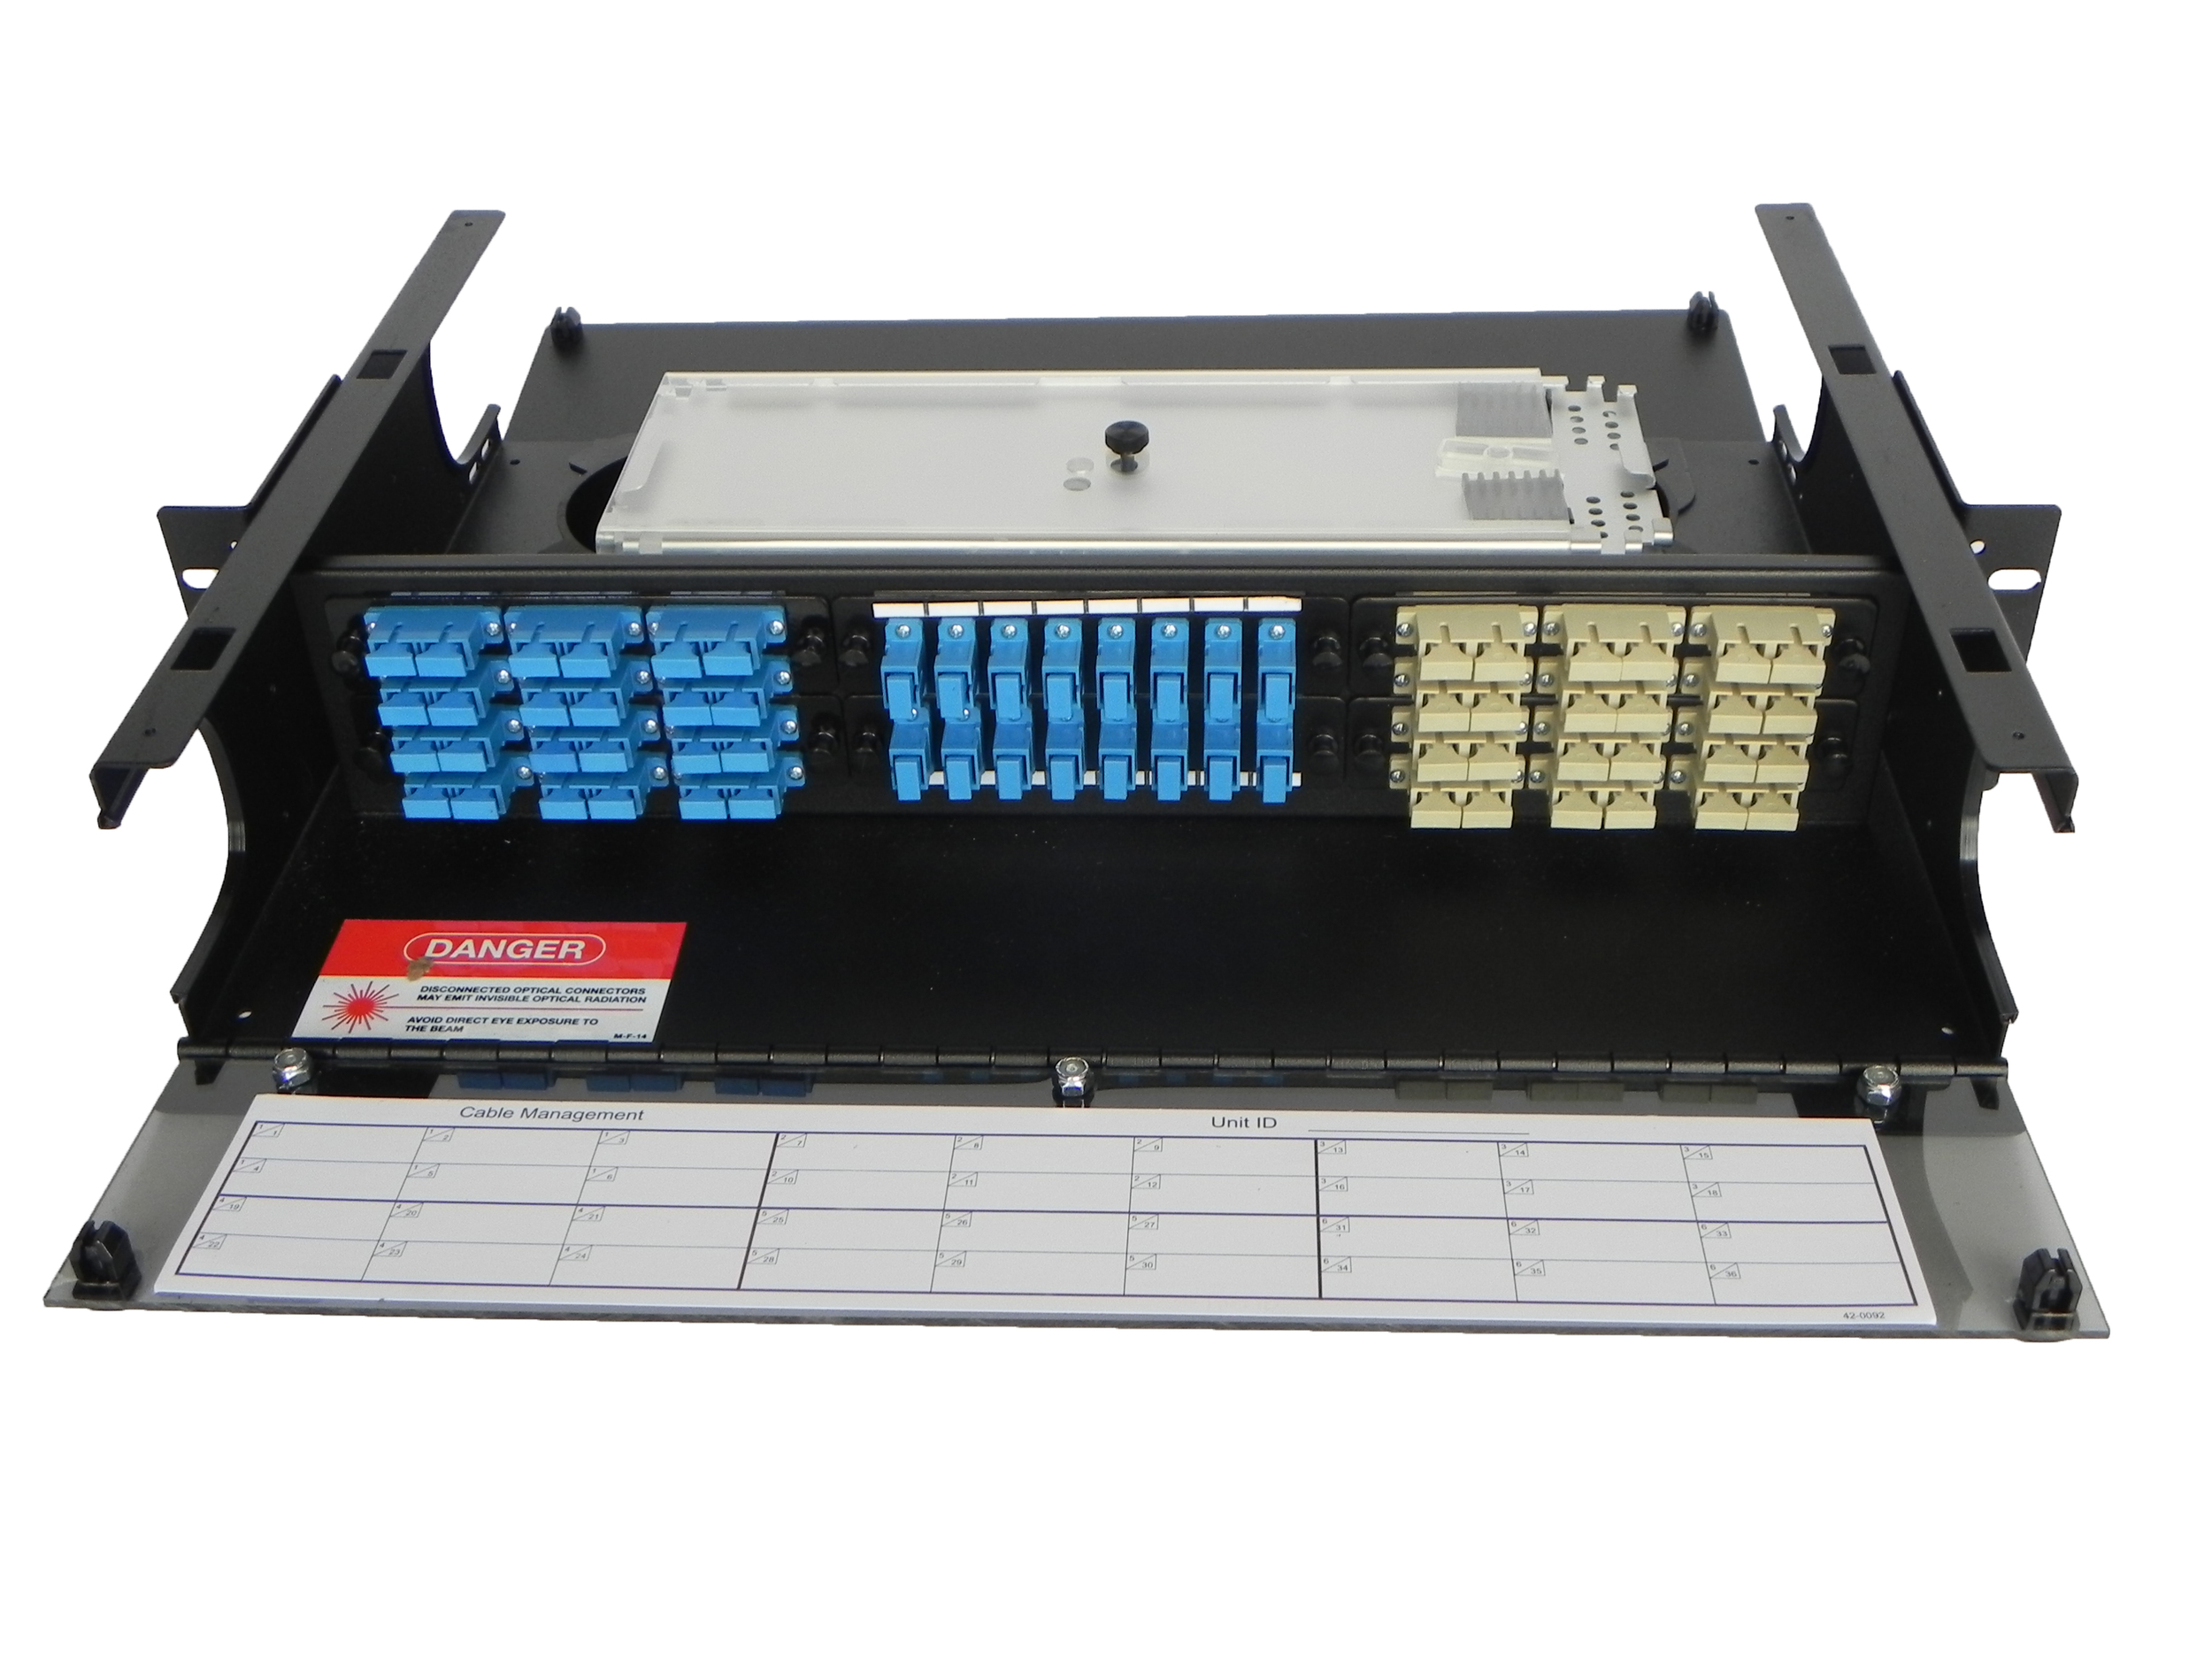 Front view of panel with splice tray